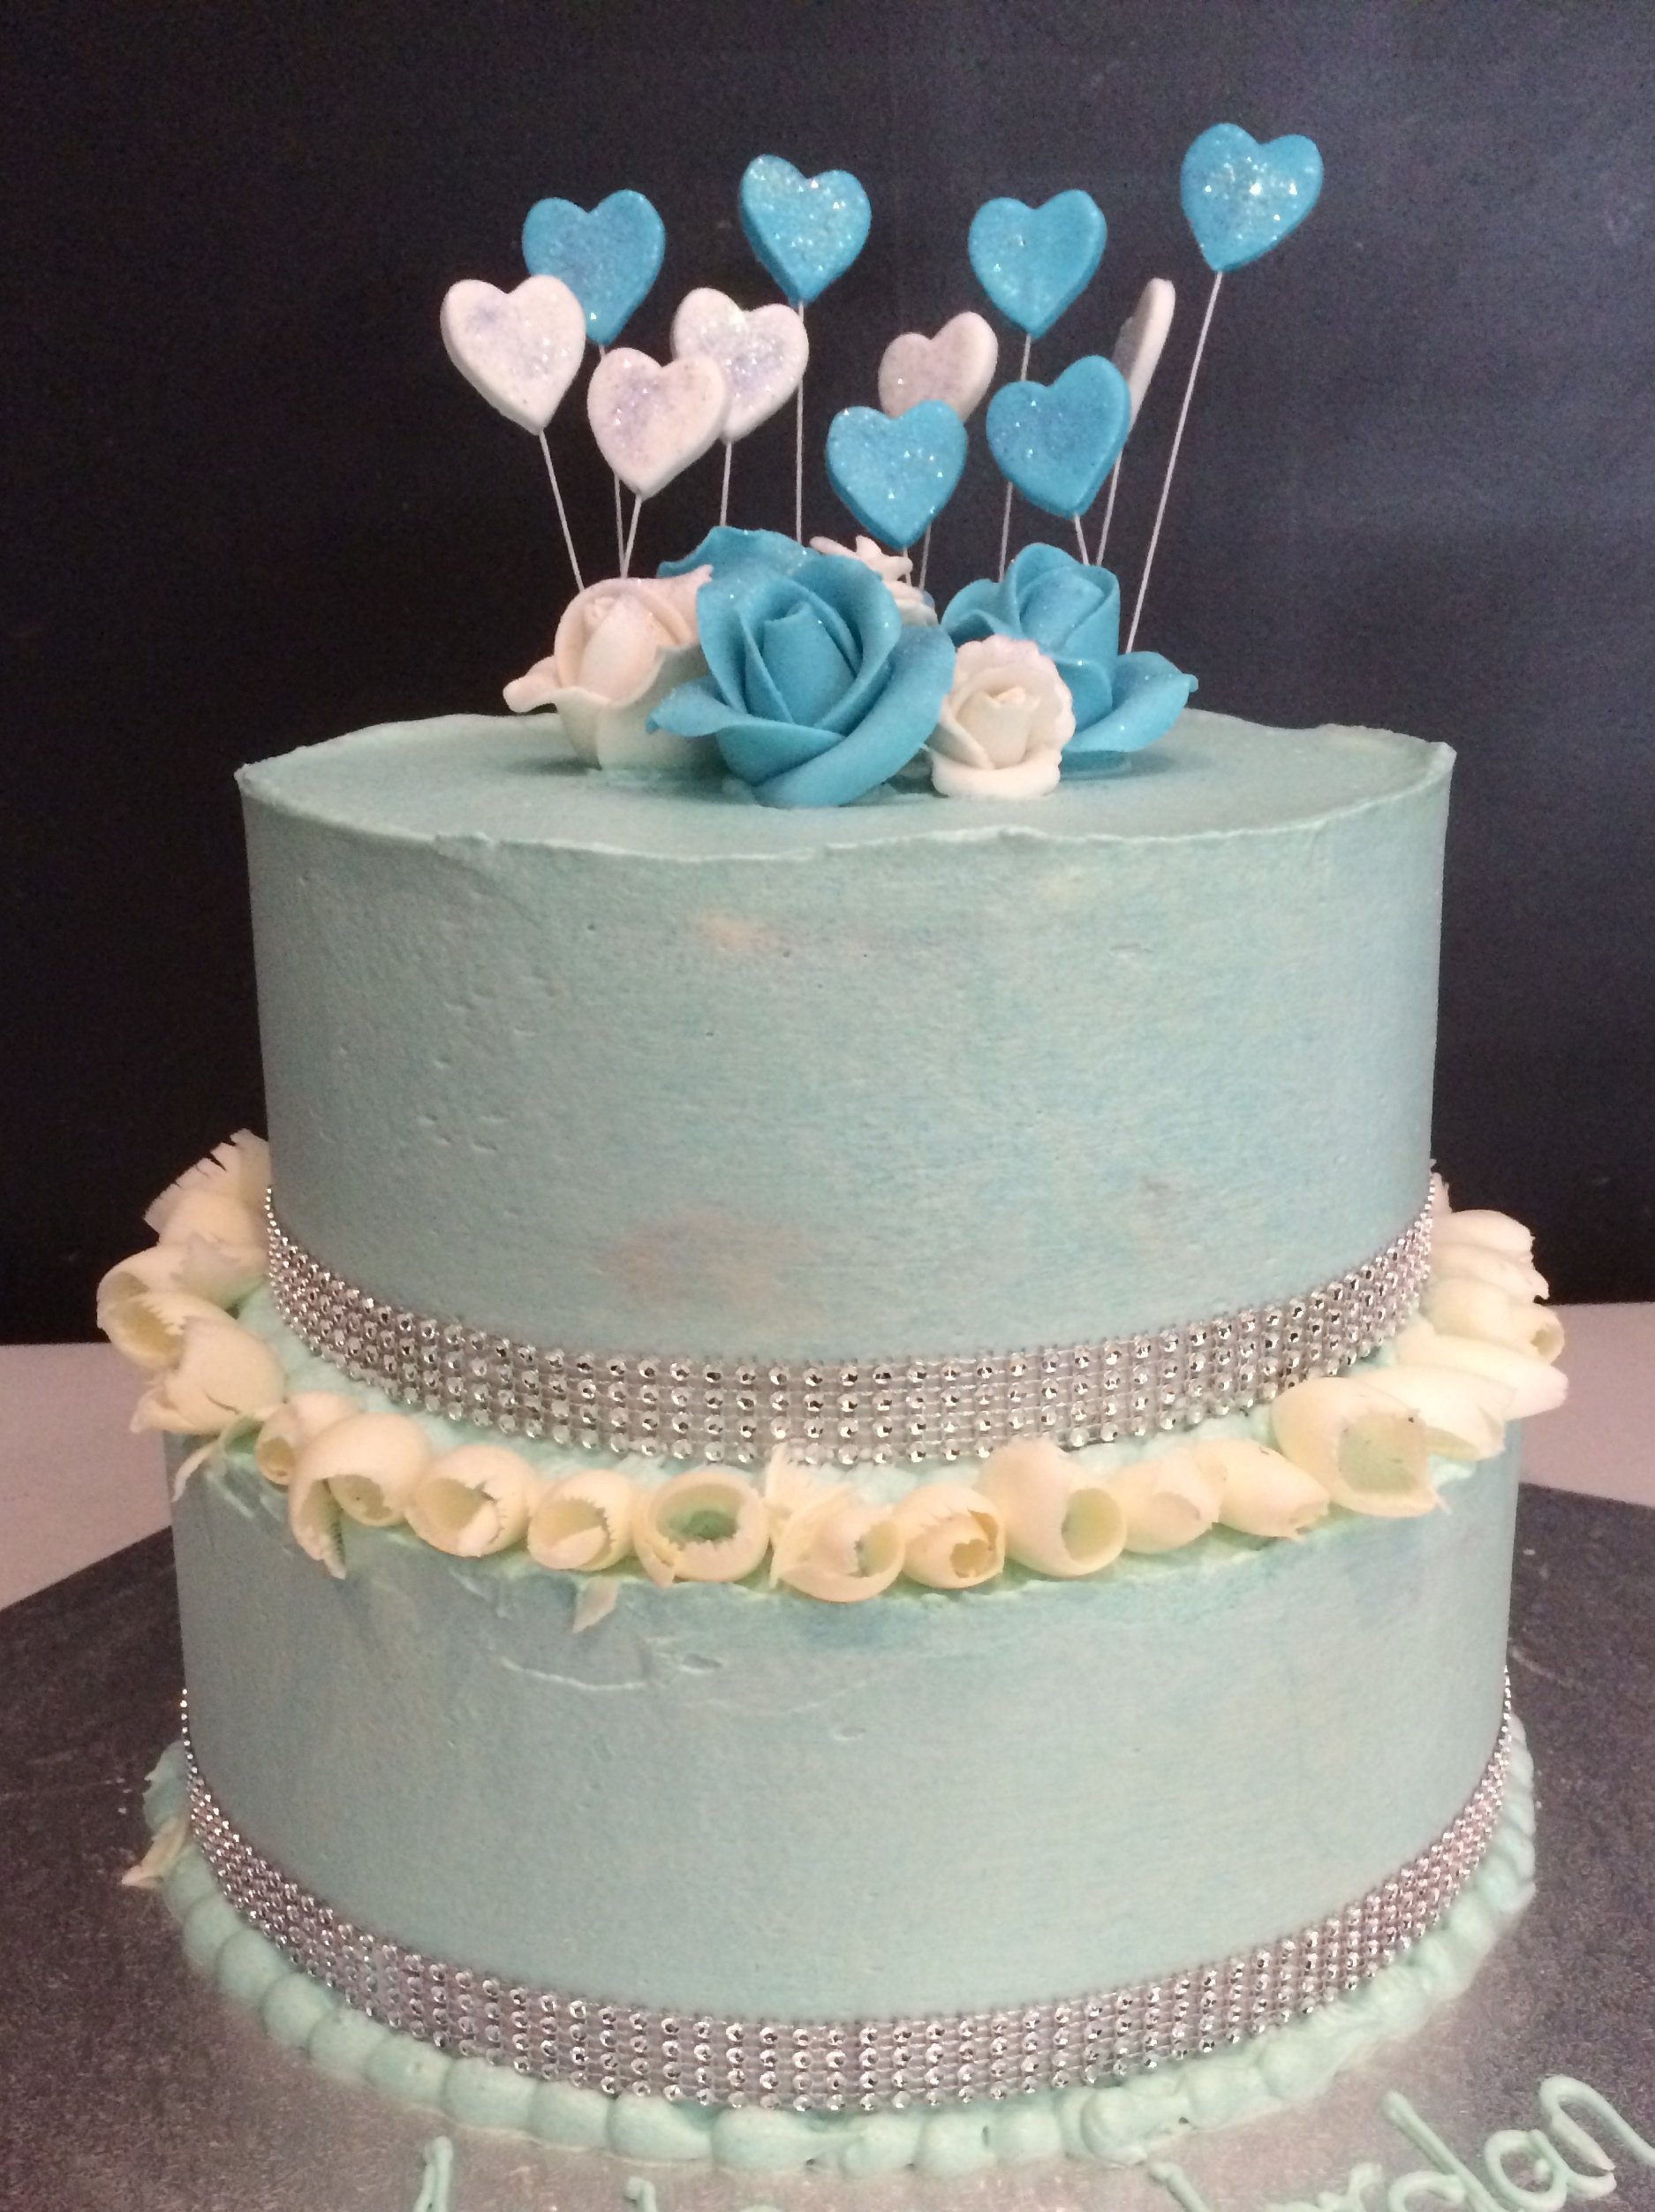 double stack blue cake with hearts